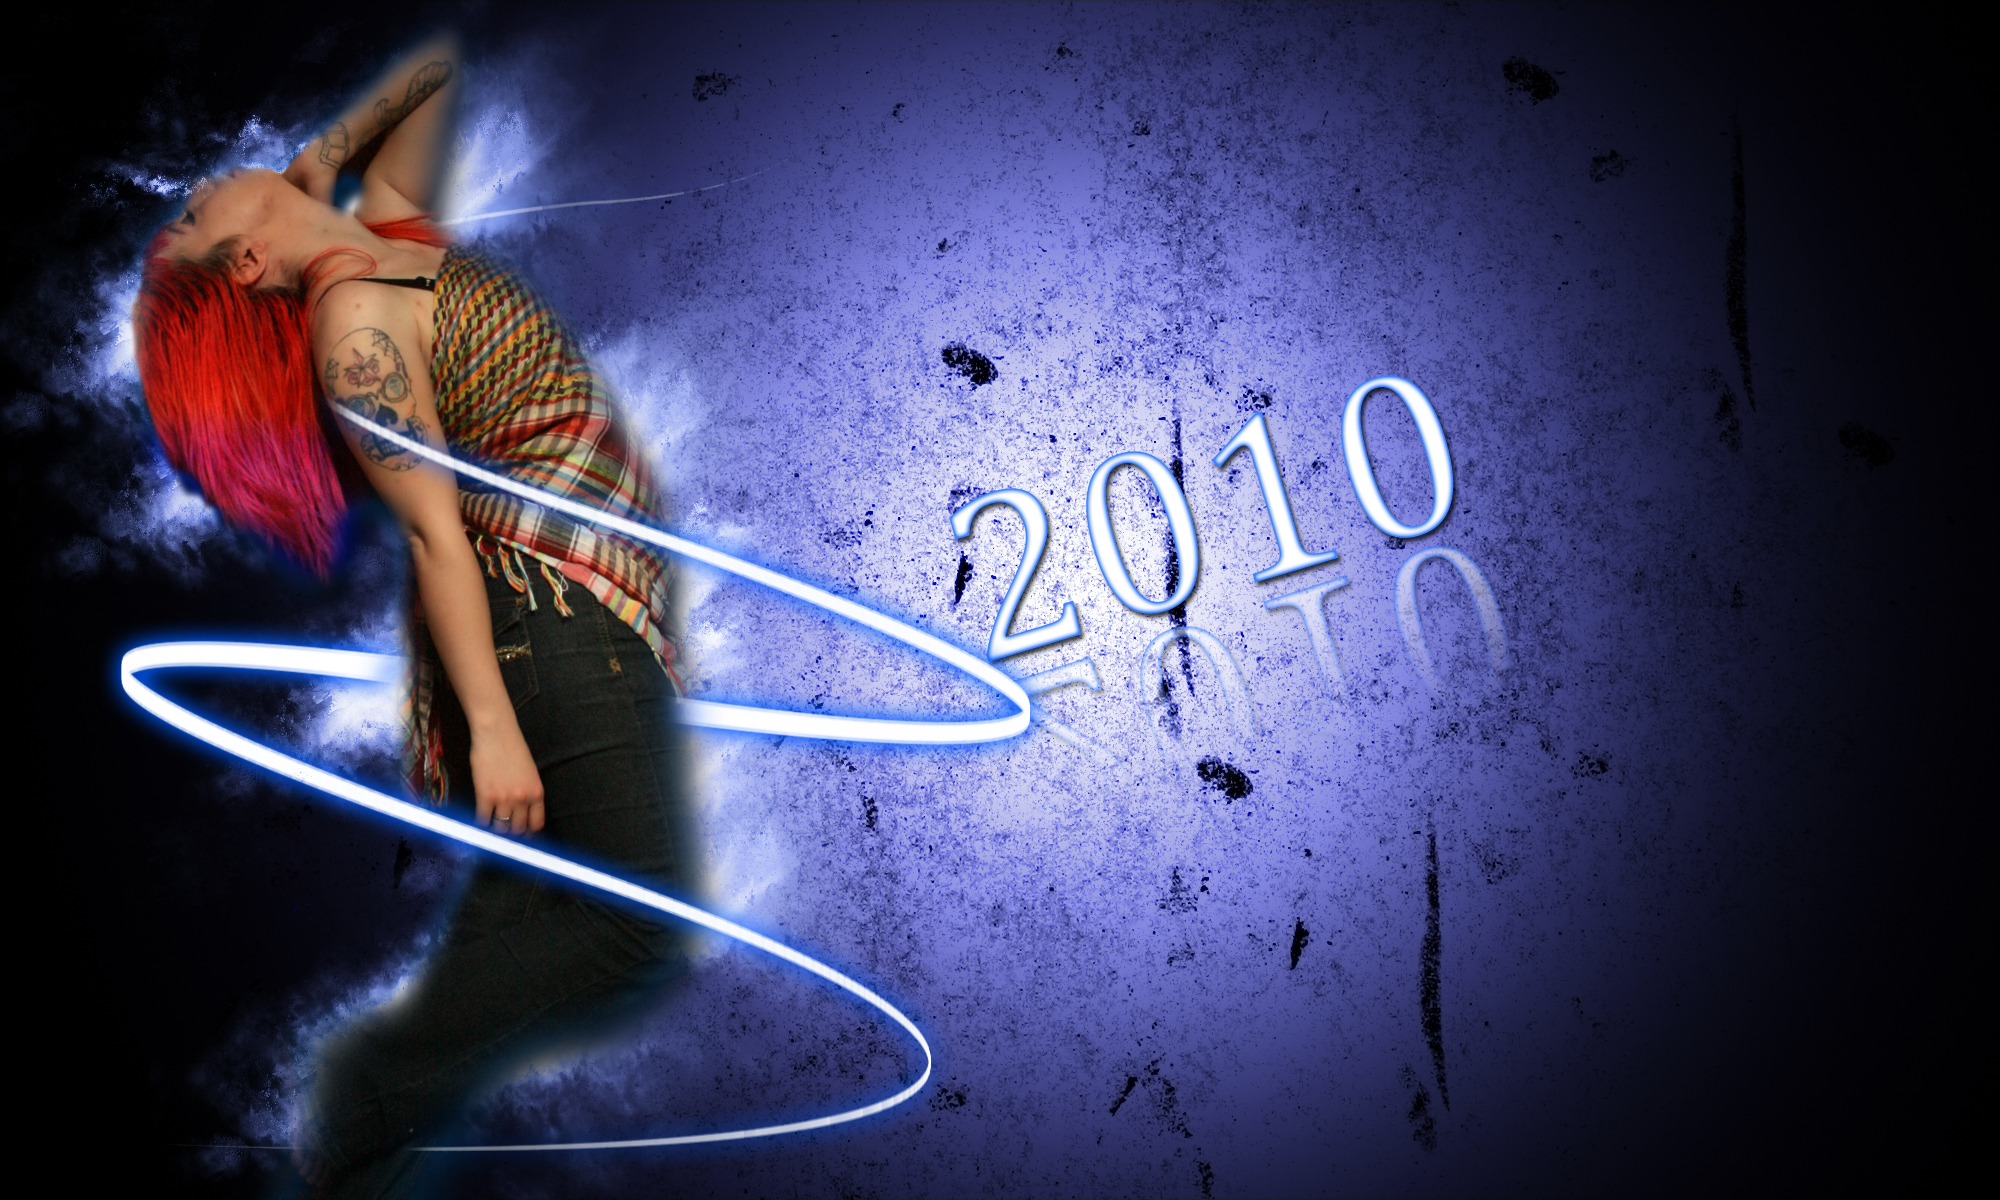 2010 Wallpaper by LifeEndsNow